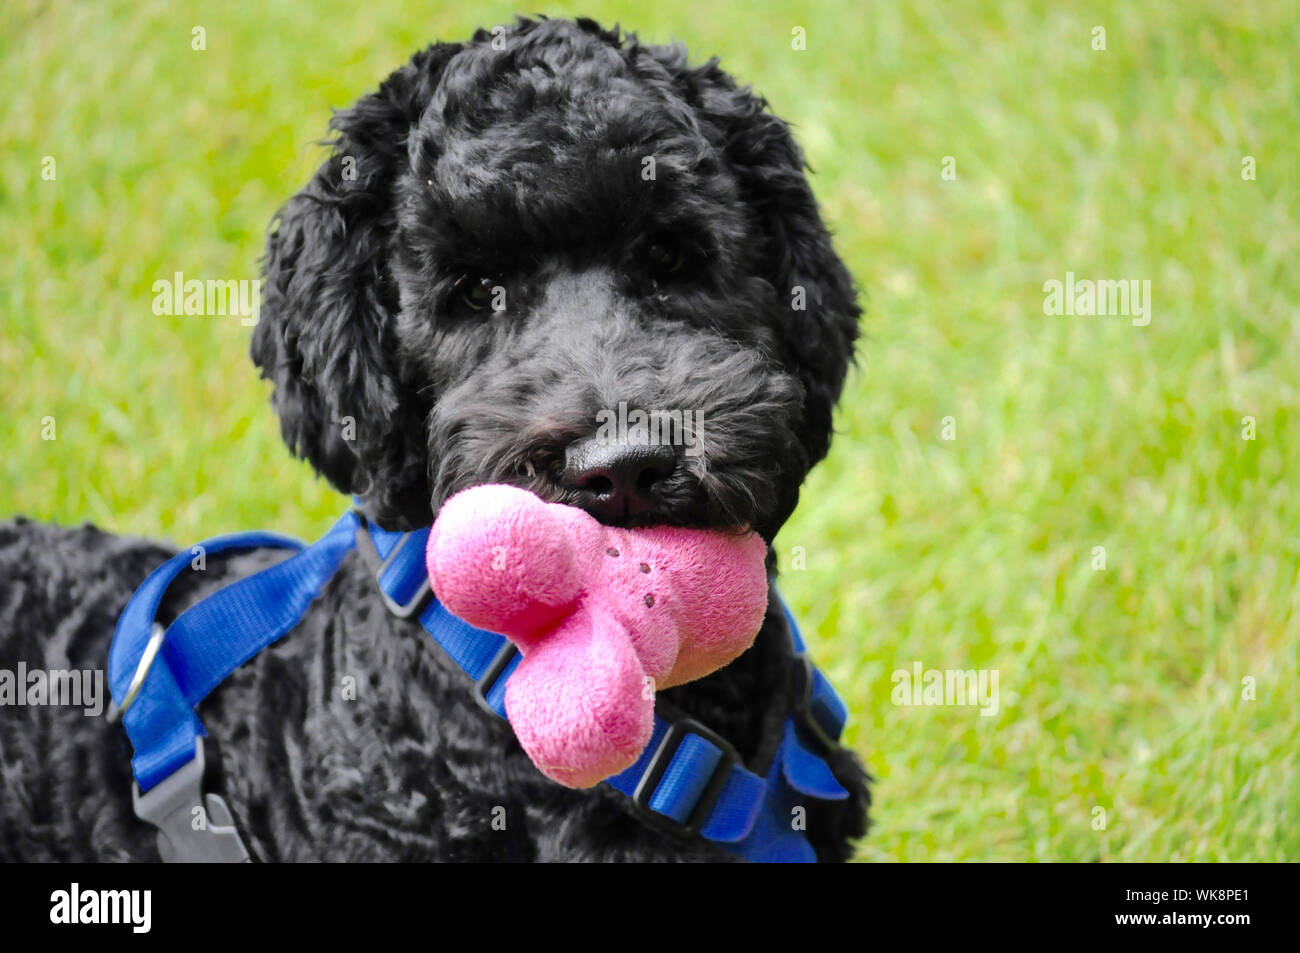 Toy Poodle Black Stock Photos Toy Poodle Black Stock